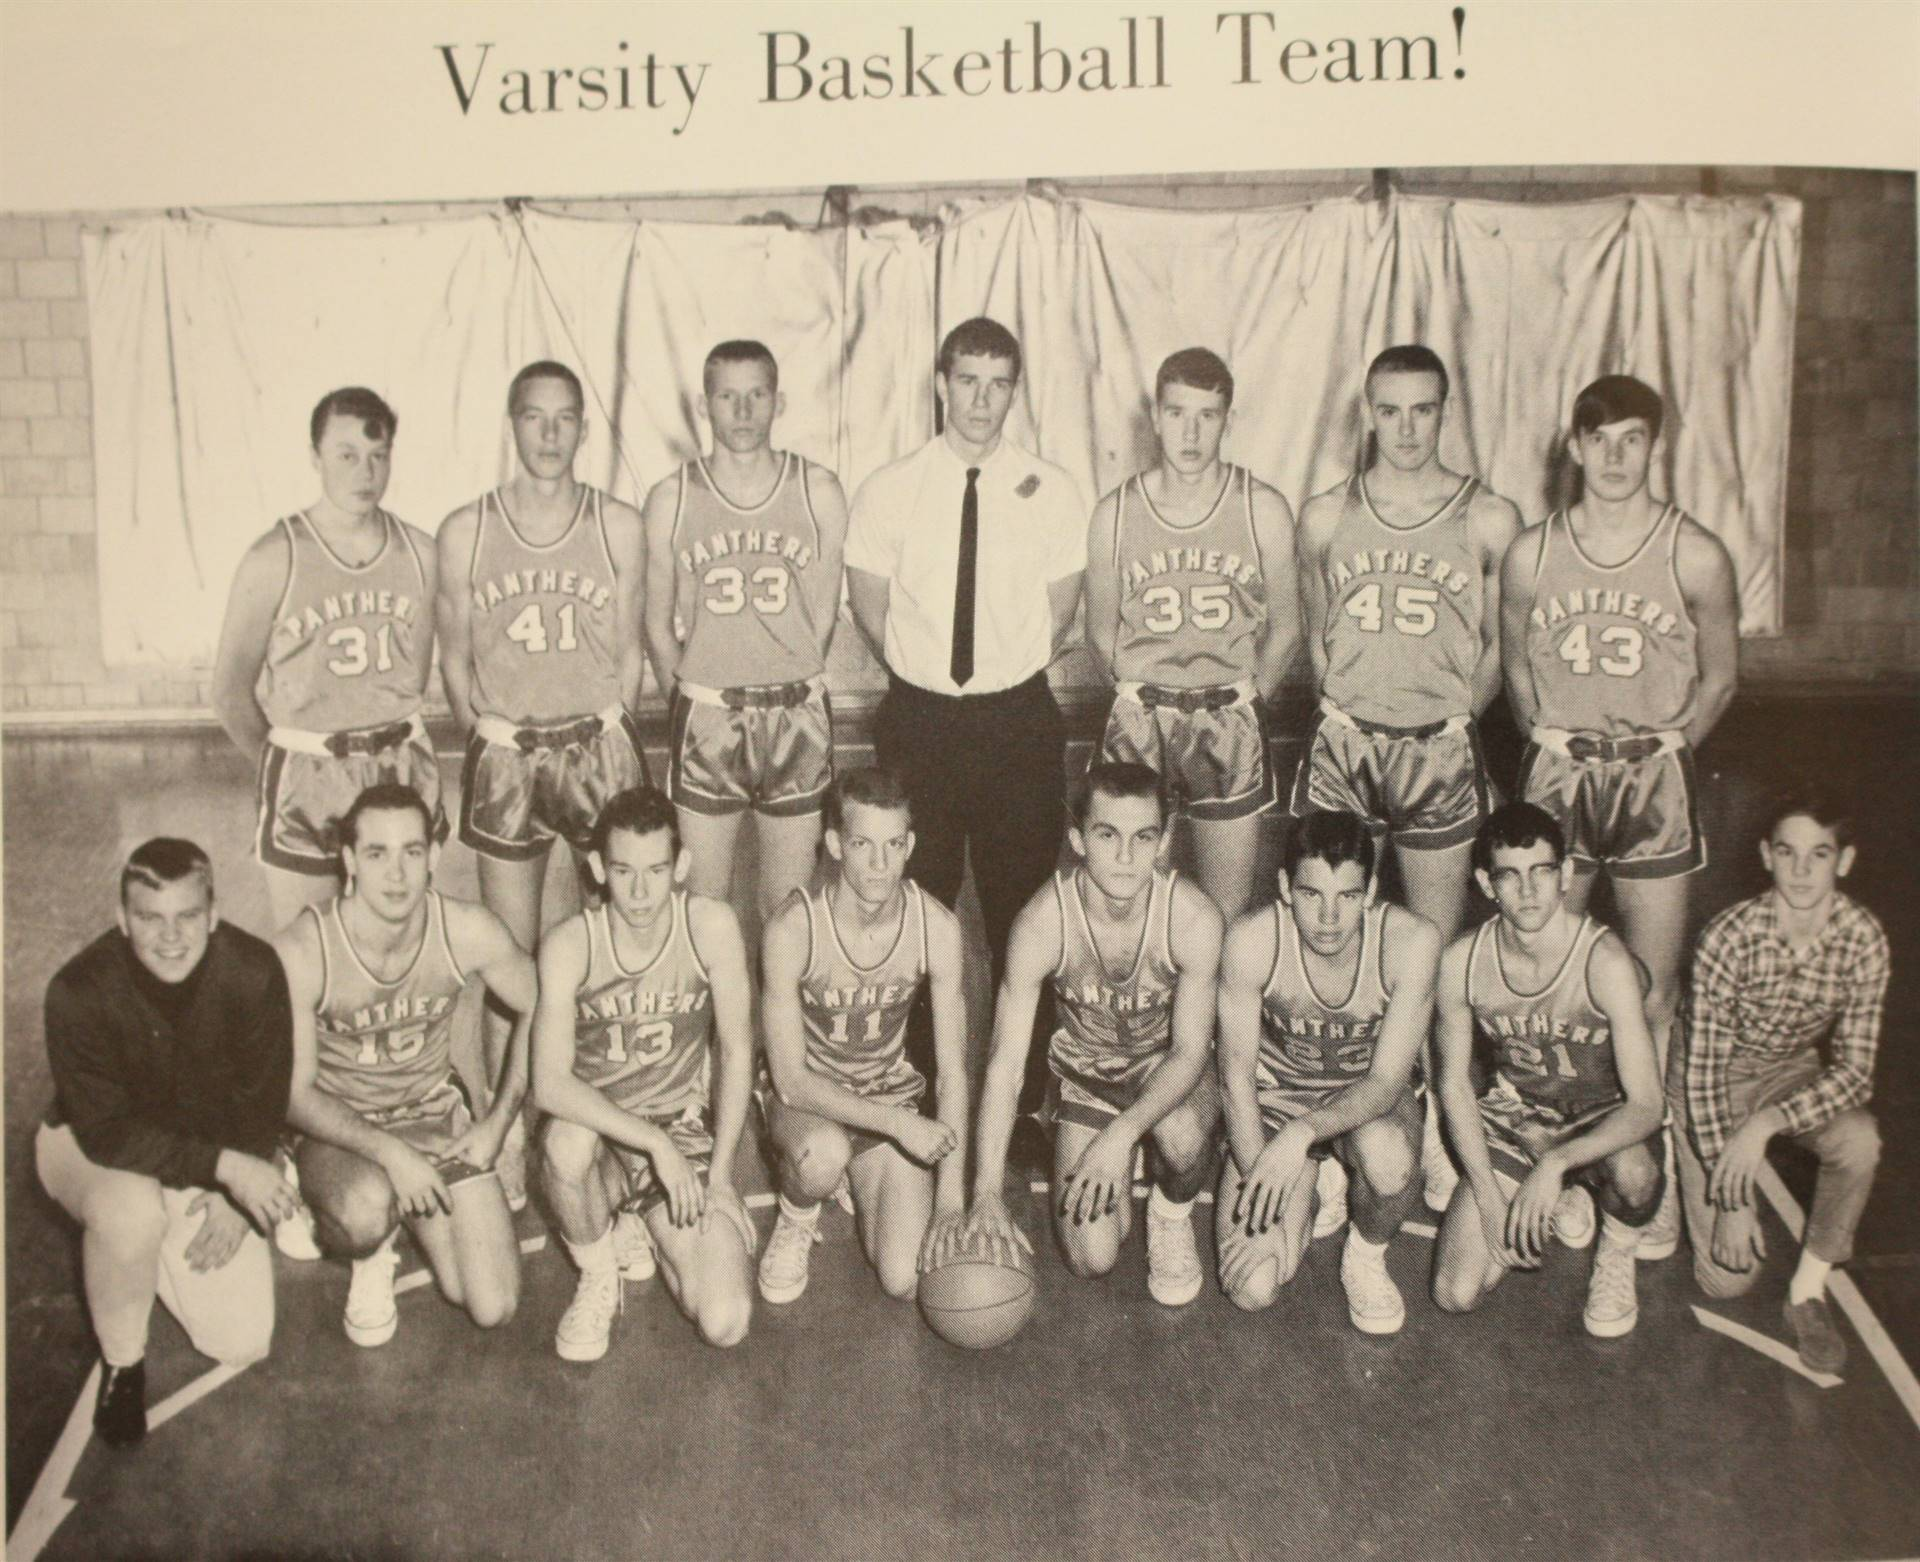 1966 Varsity Basketball Team!